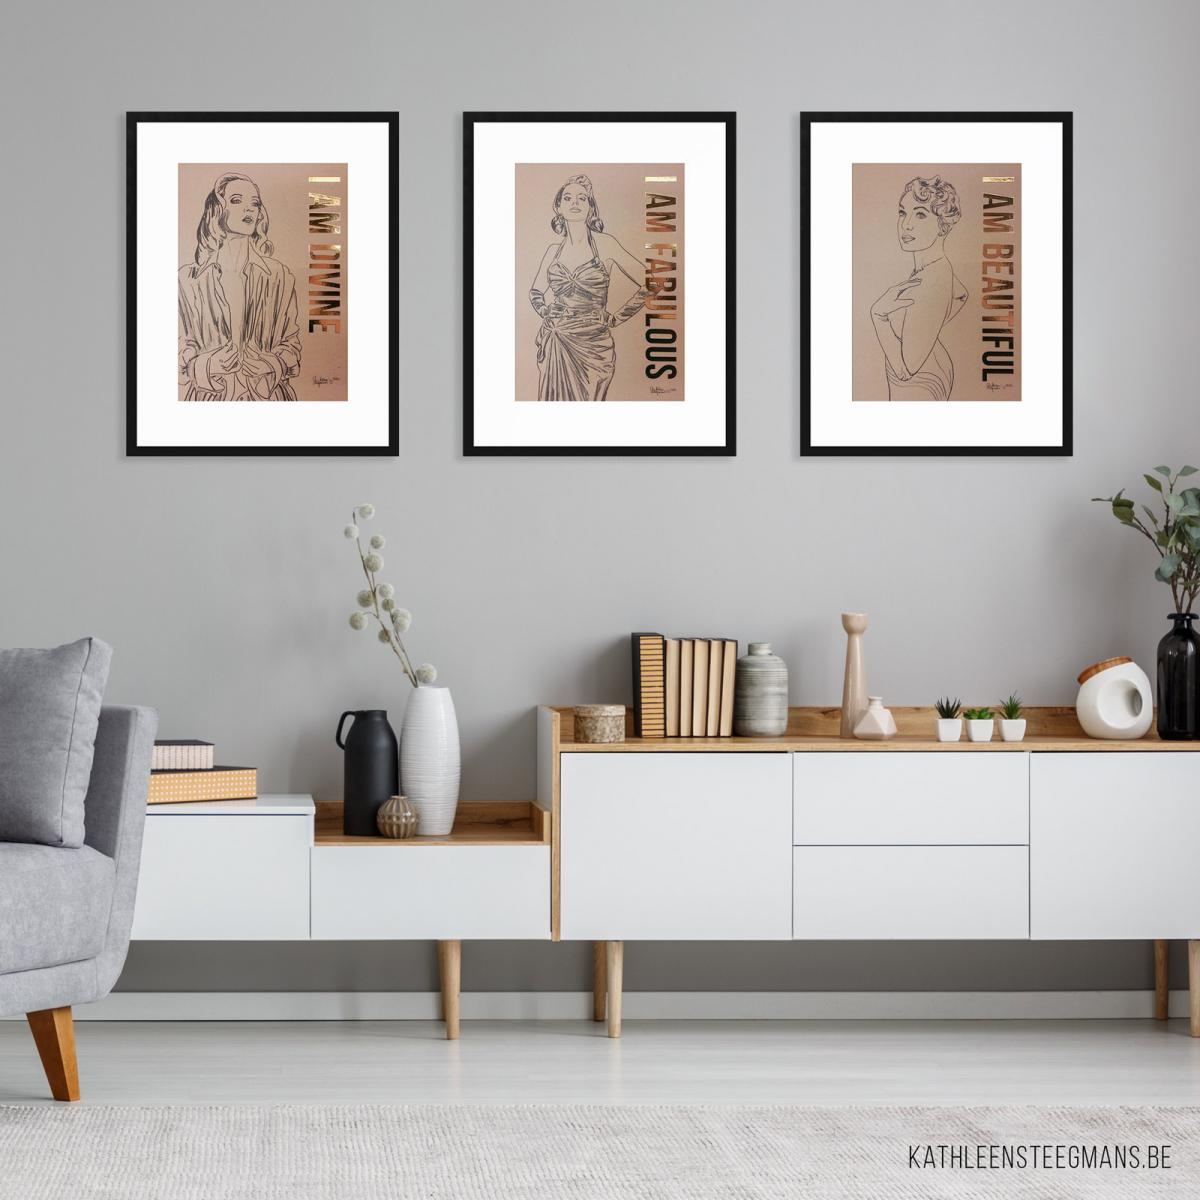 3 Limited Edition Prints, inspired by the power of 'I Am' affirmations.